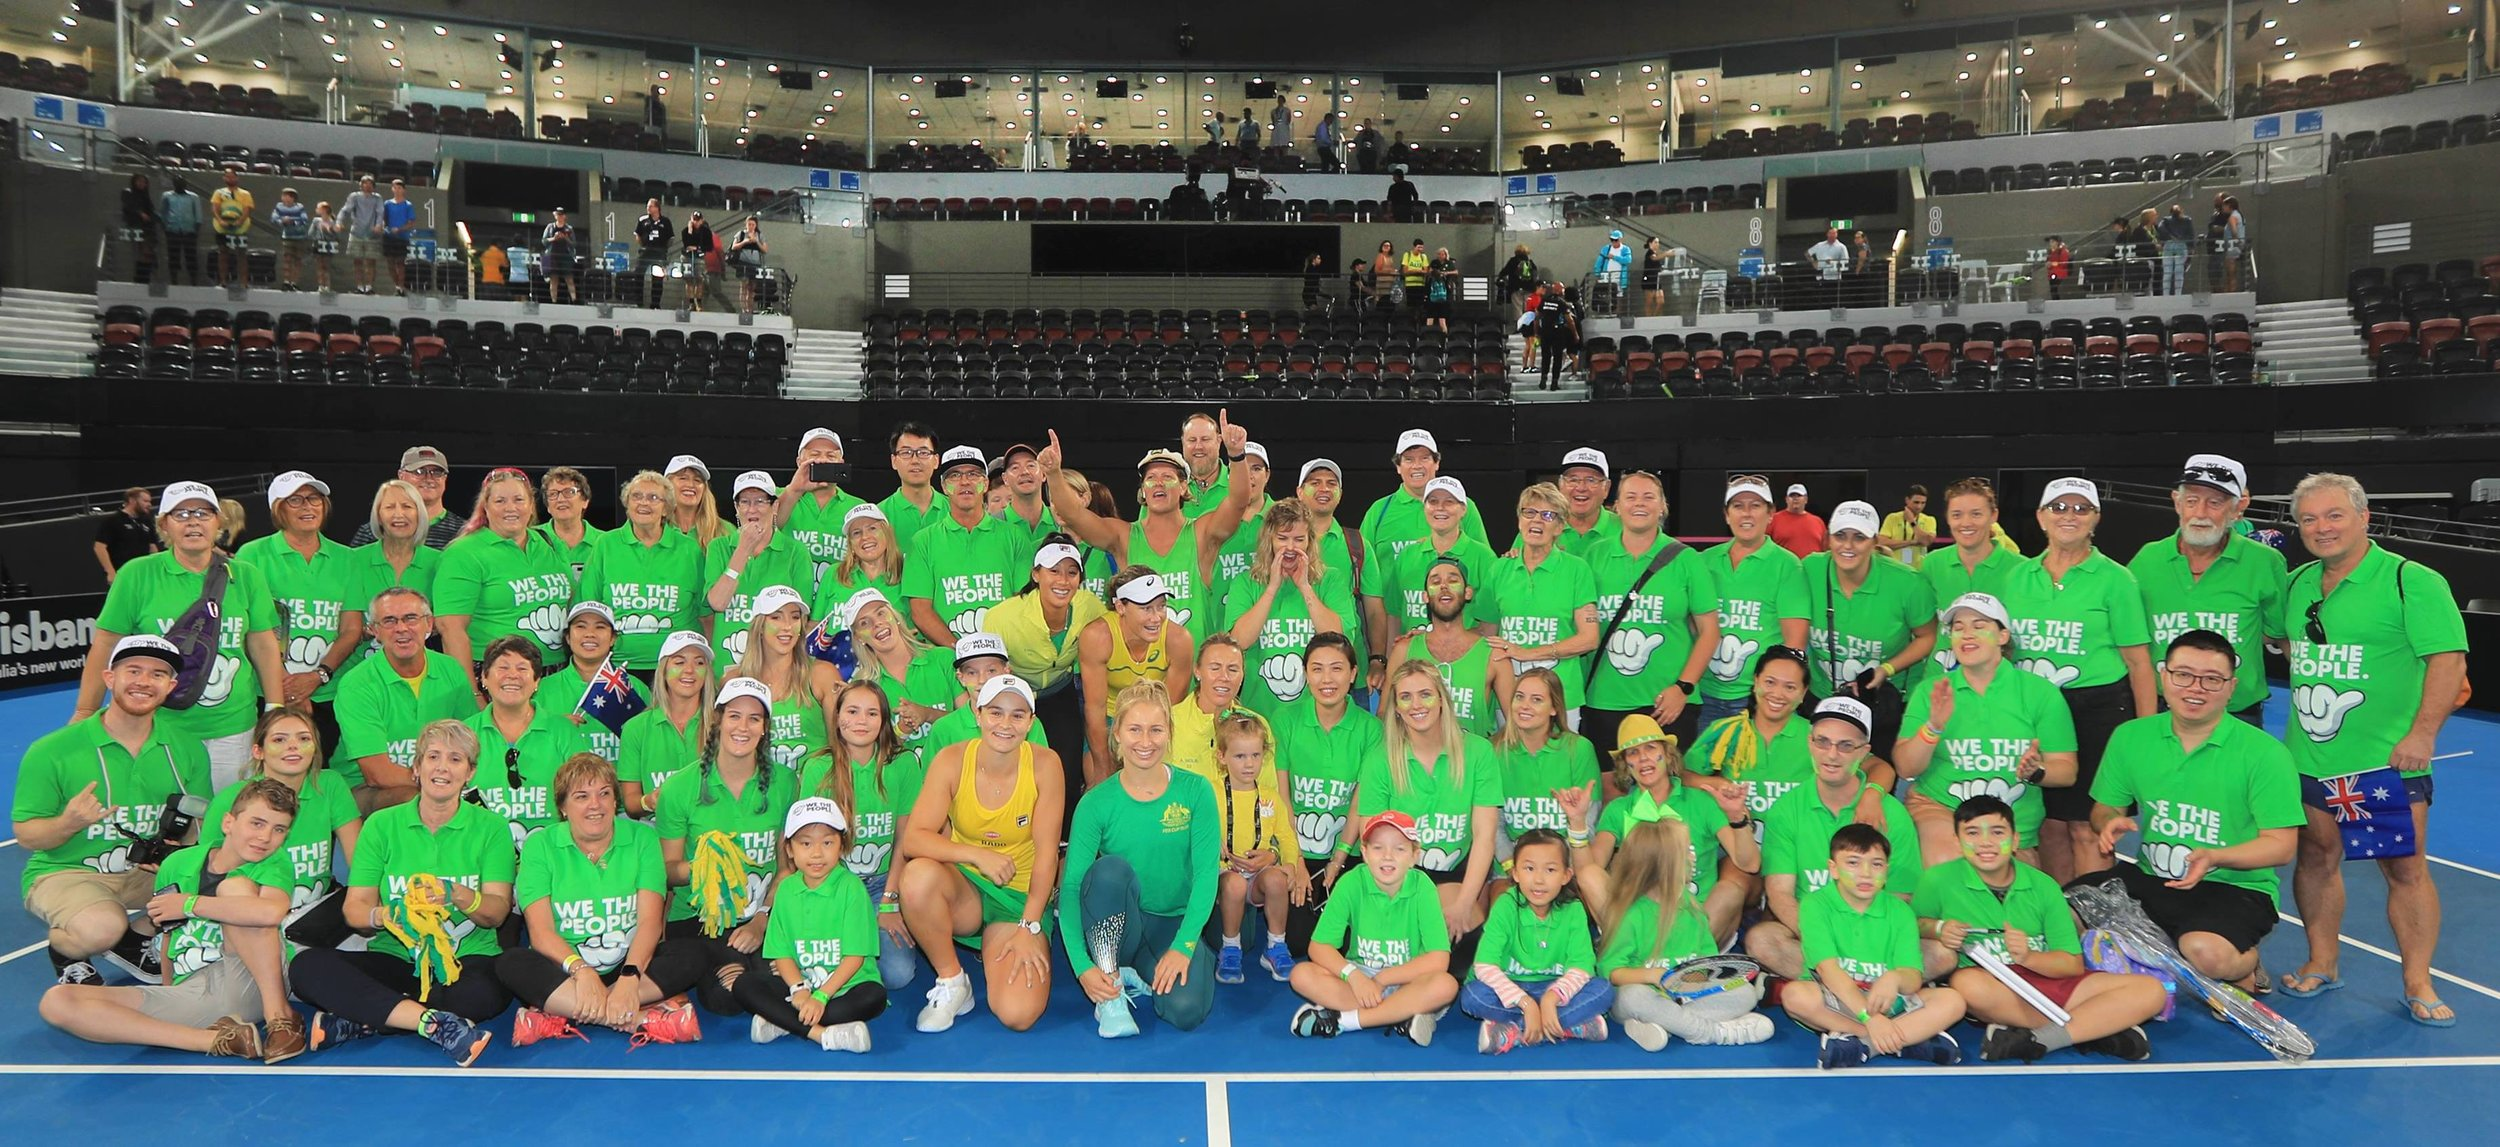 Gold We The People supporters on court in an exclusive meet & greet opportunity after their Semi-final win against Belarus